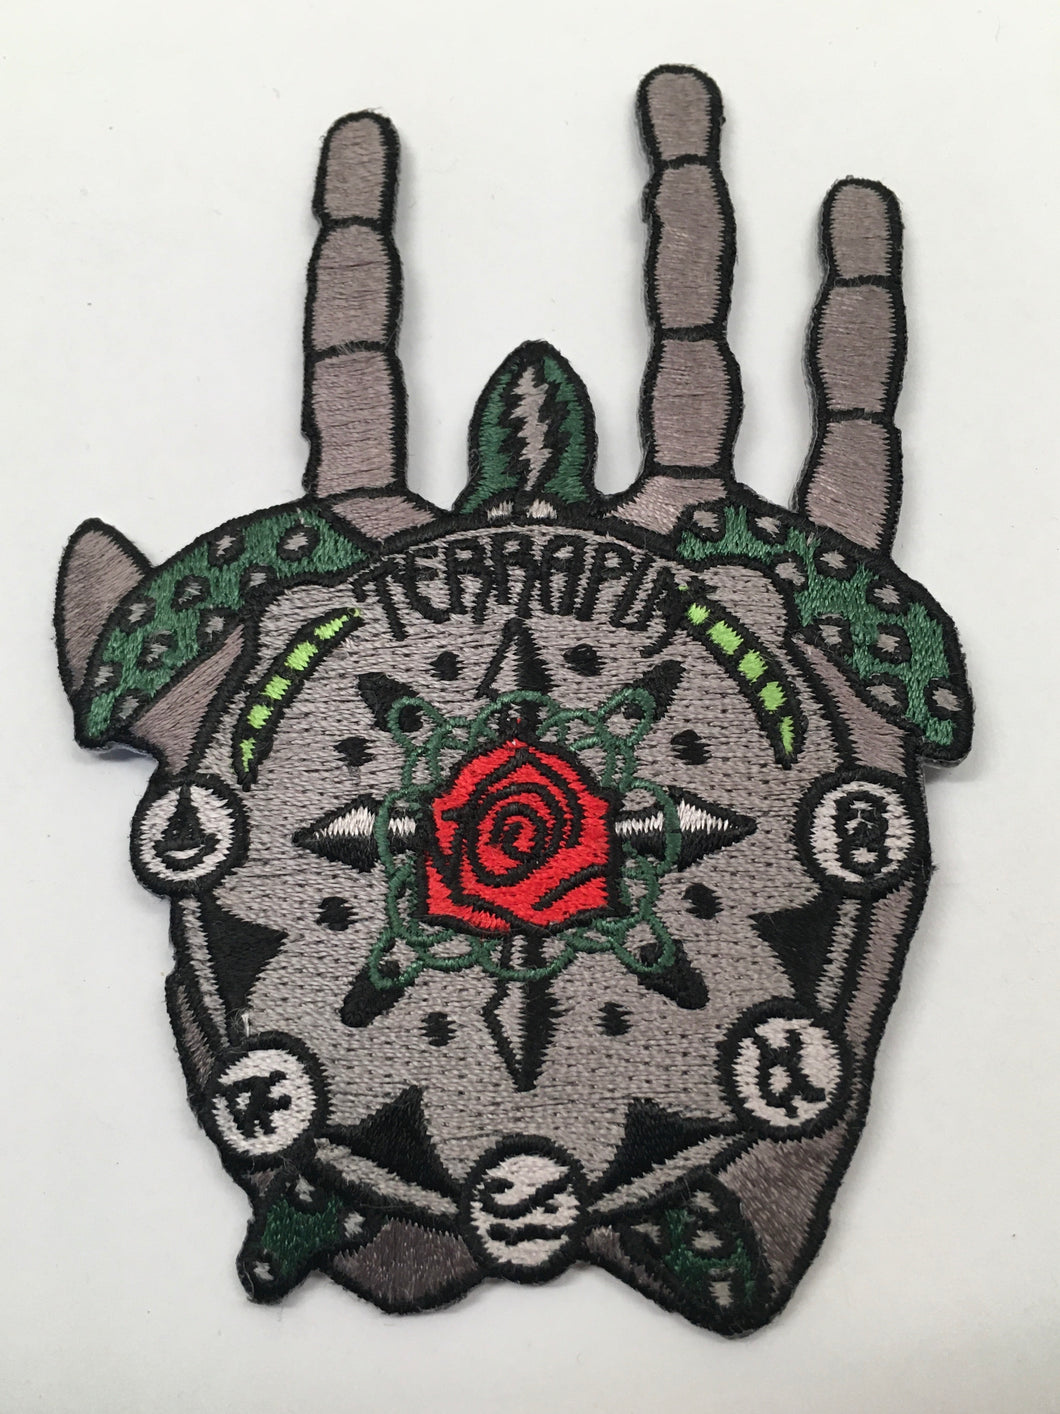 Terrapin Patch (Vintage)